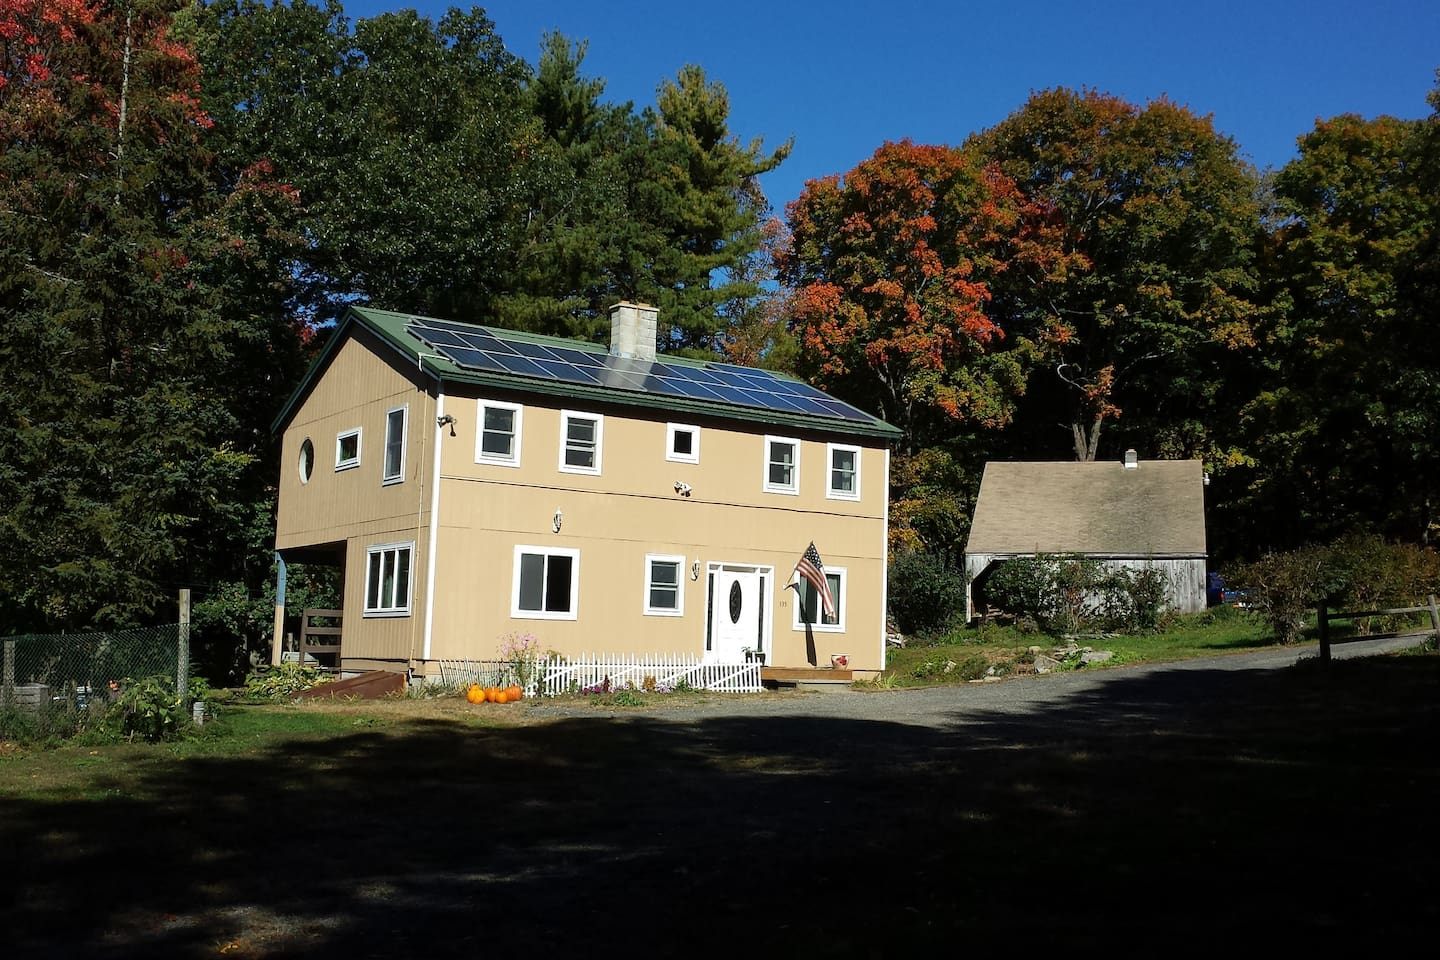 Spacious colonial home in hills of Pelham MA.